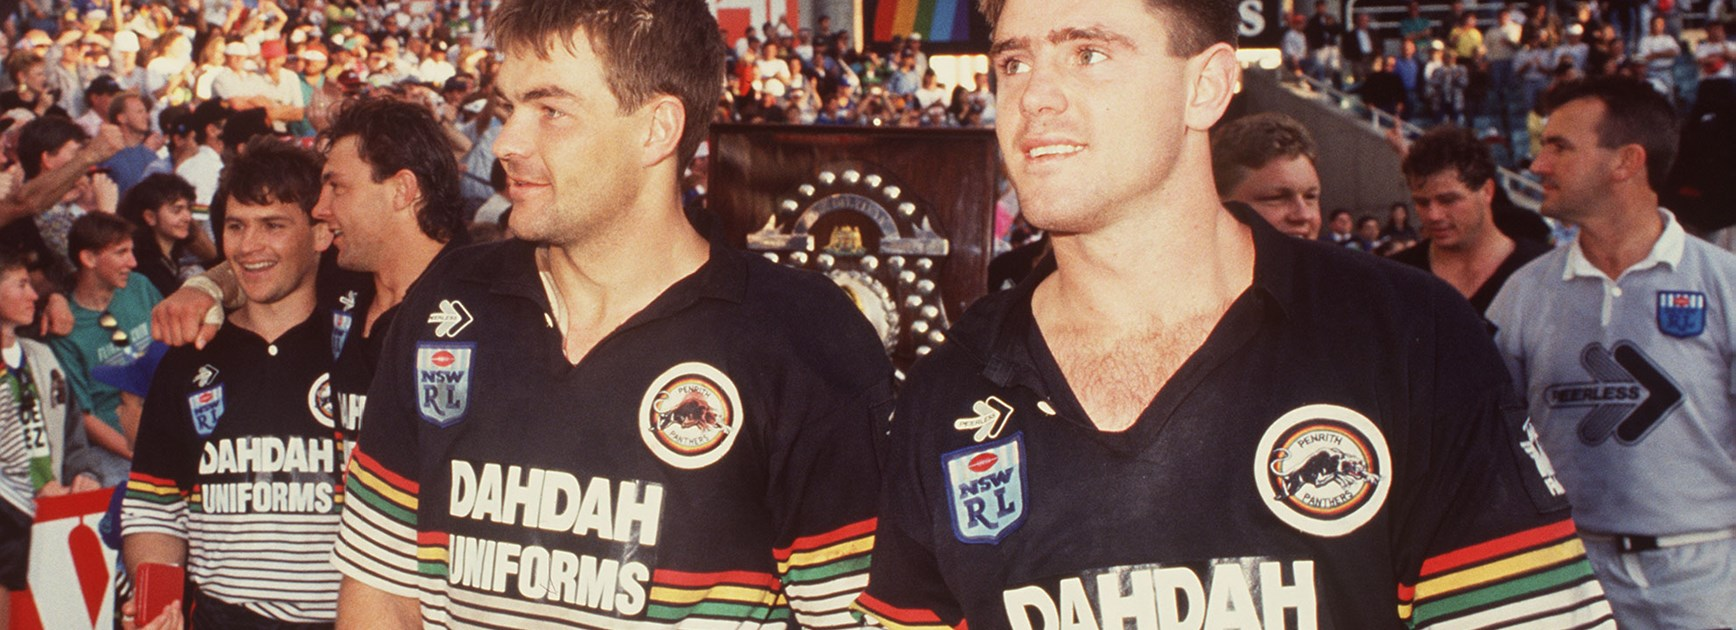 Fittler with Paul Dunn after Penrith's 1991 grand final win over Canberra.